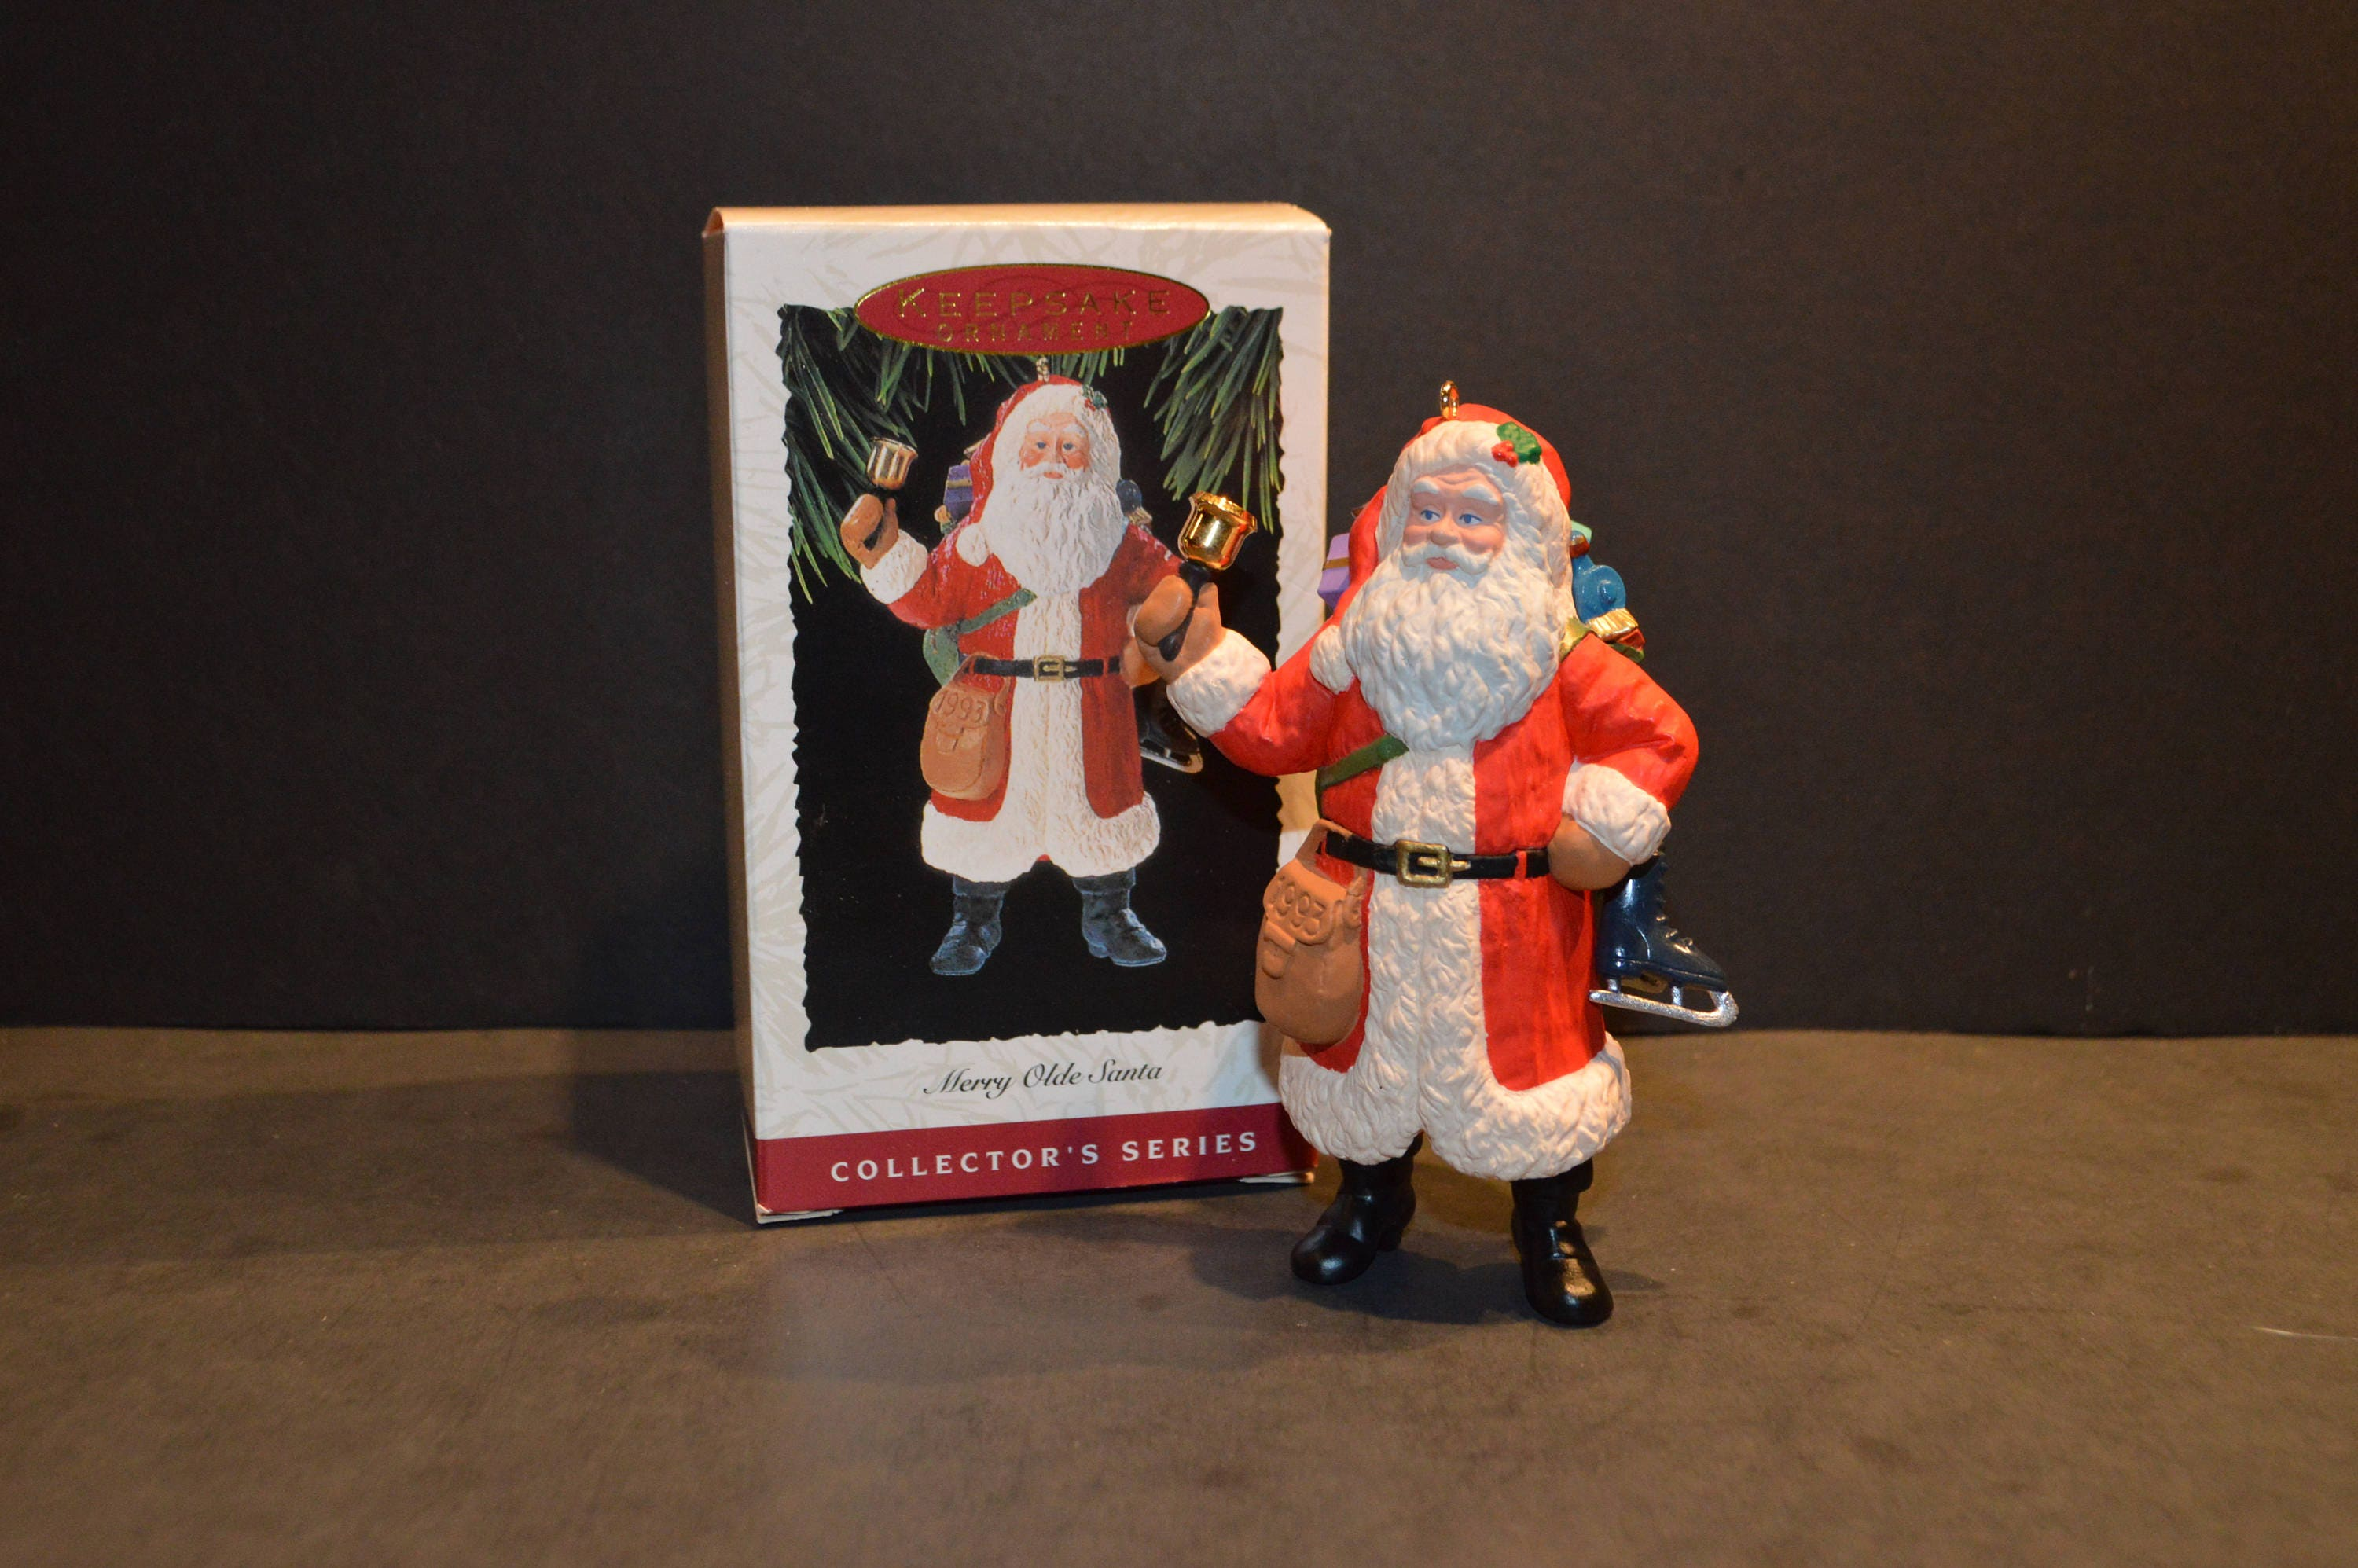 boots product santas decor in hayneedle master santa gerson decorative cfm